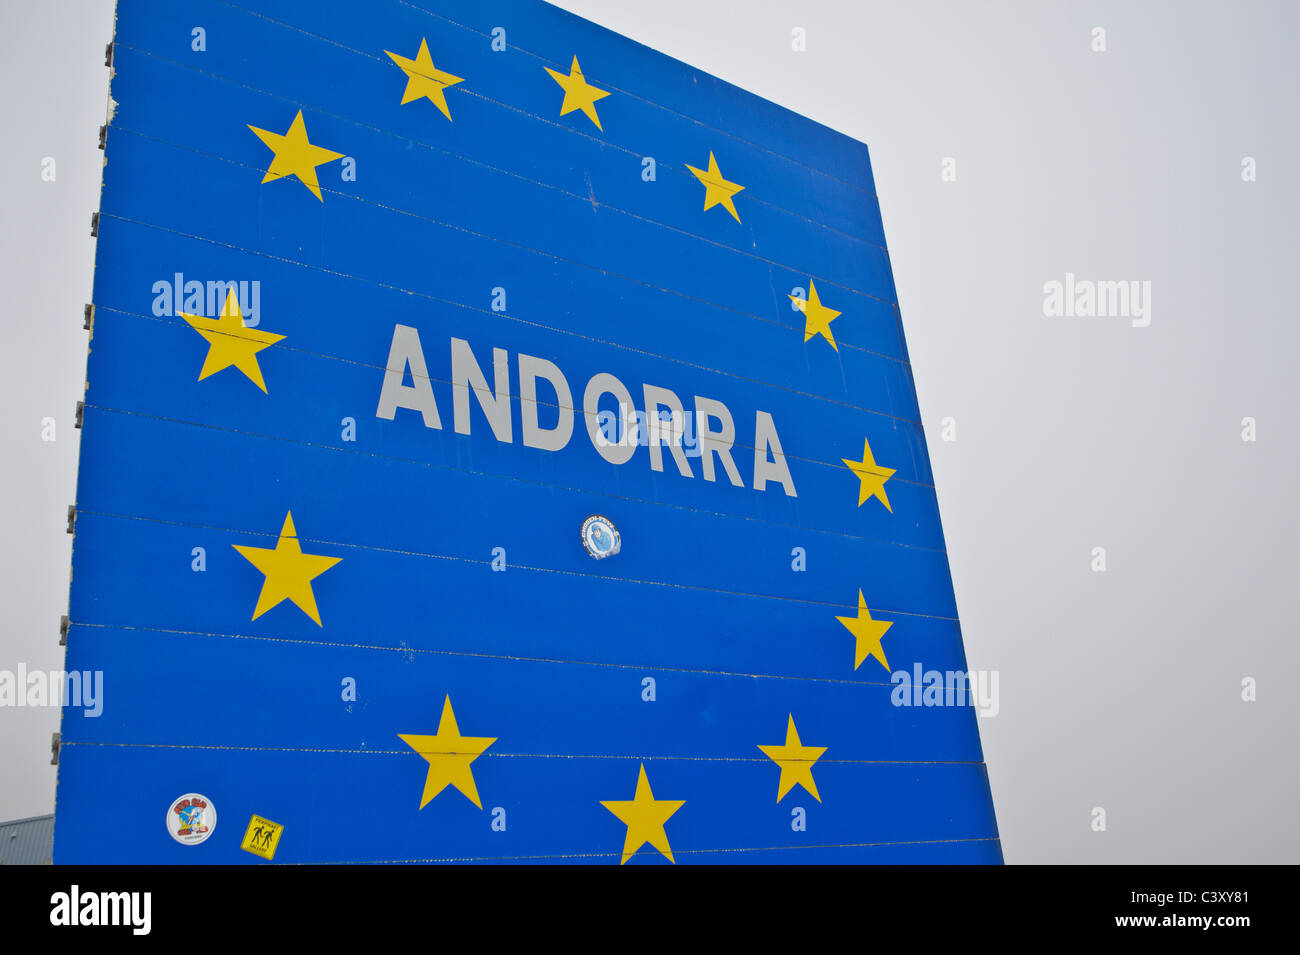 European Union sign with Andorra at its centre - Stock Image